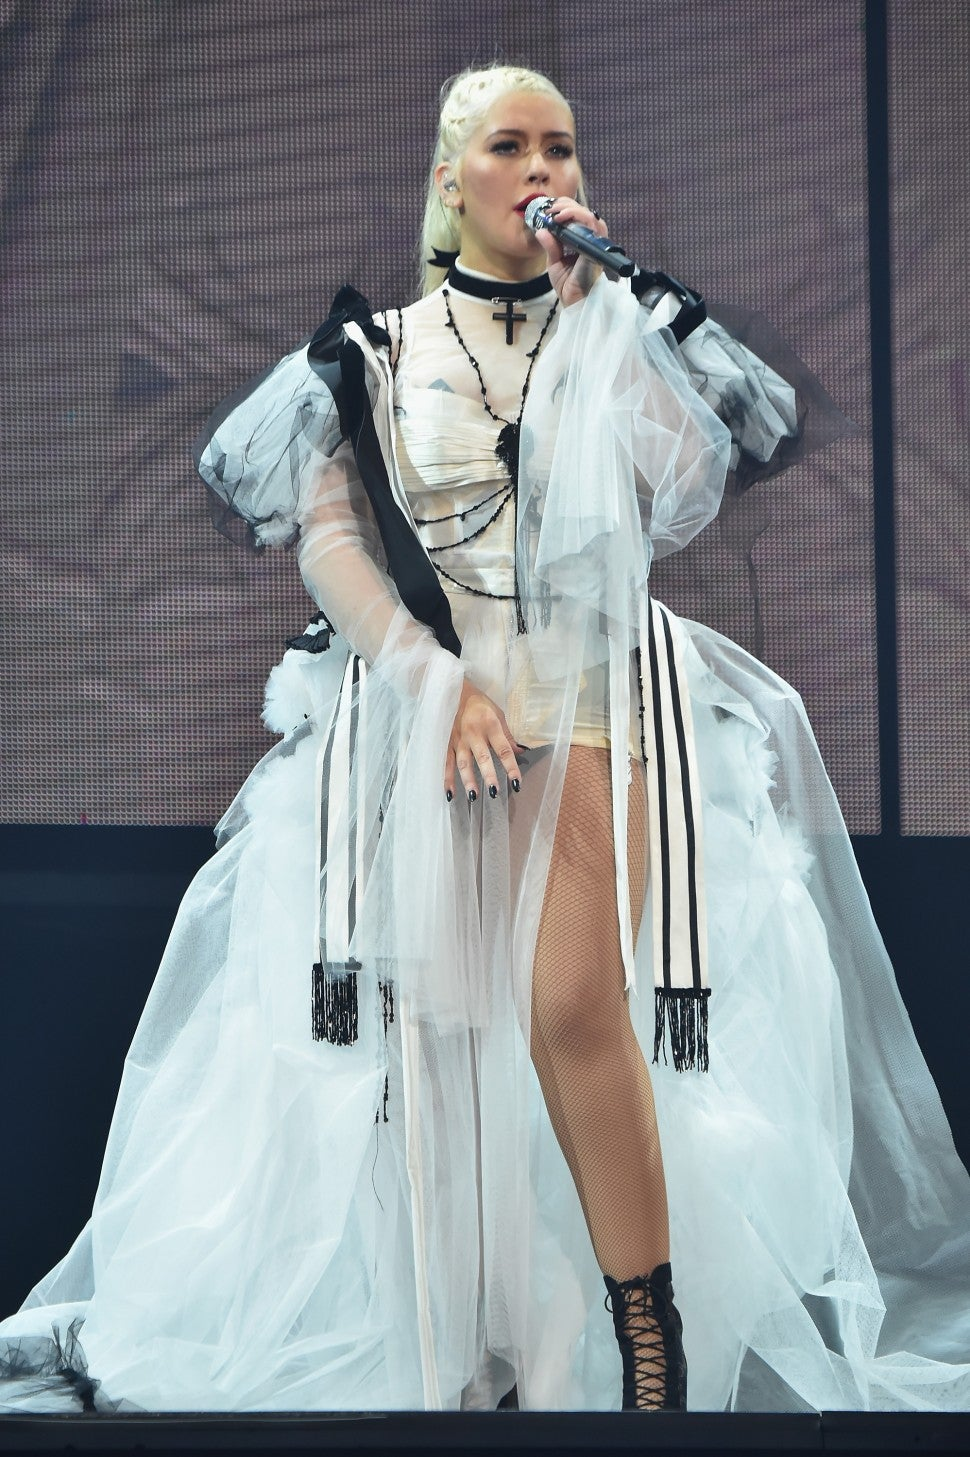 Christian Aguilera tour white dress